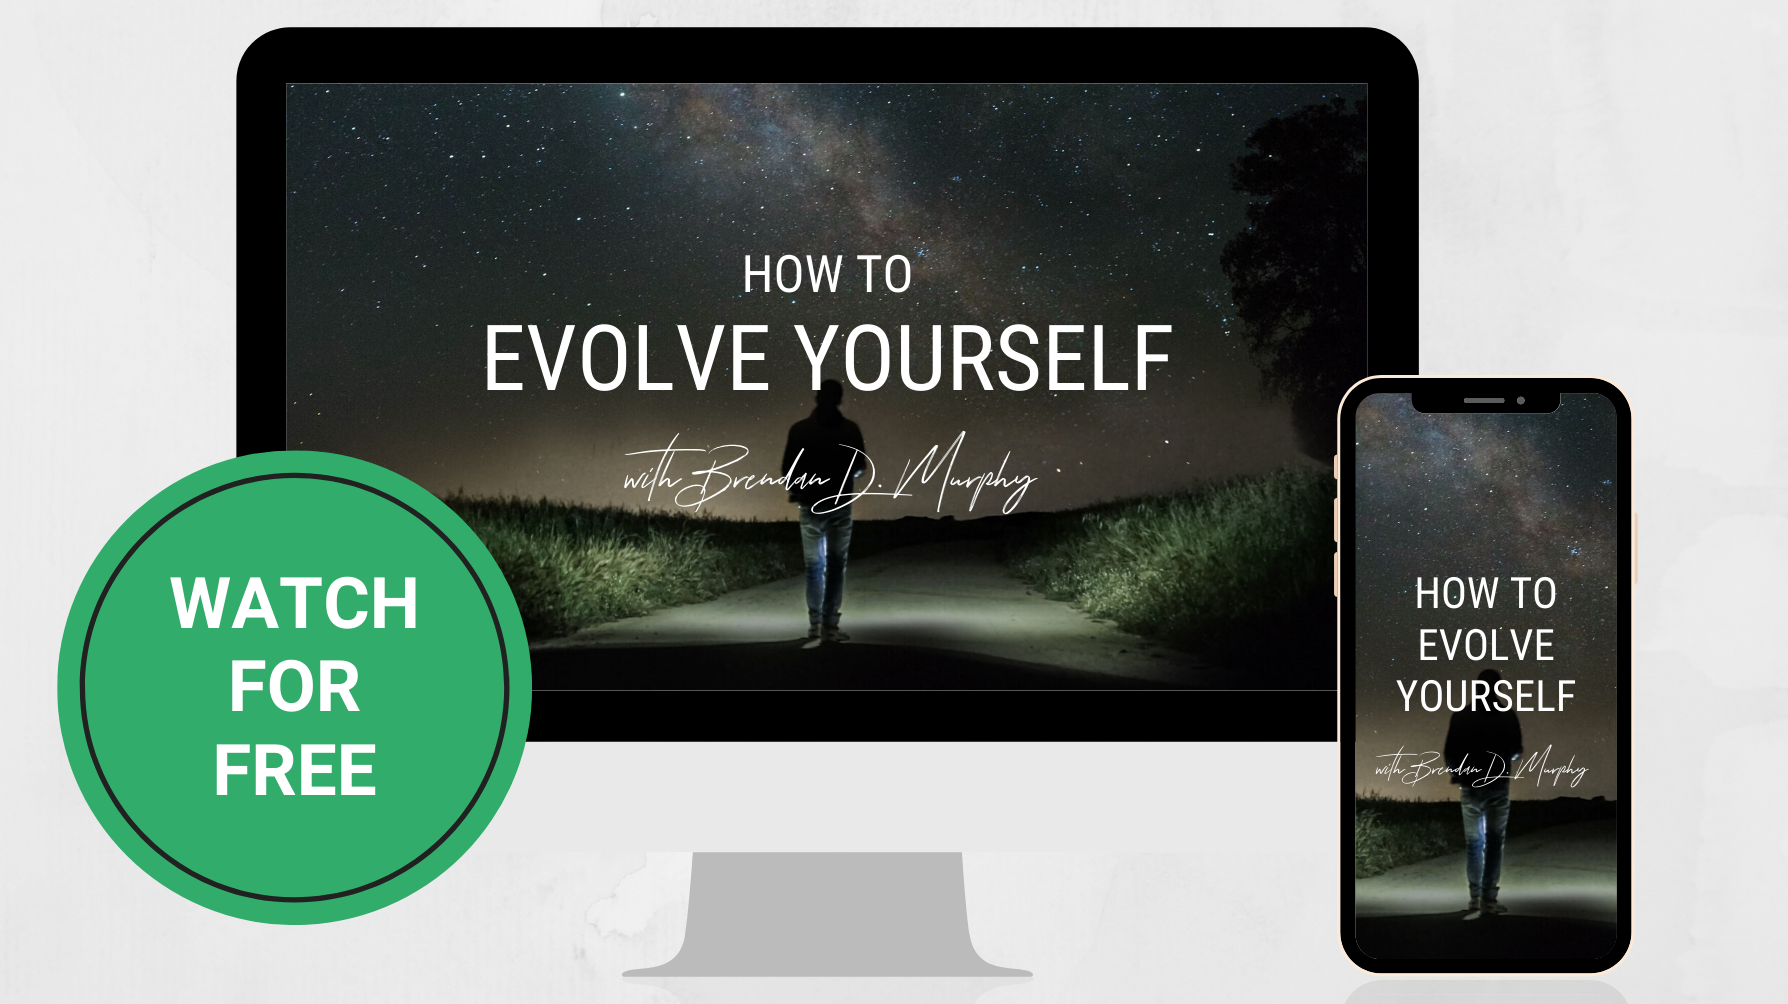 How to Evolve Yourself with Brendan D. Murphy